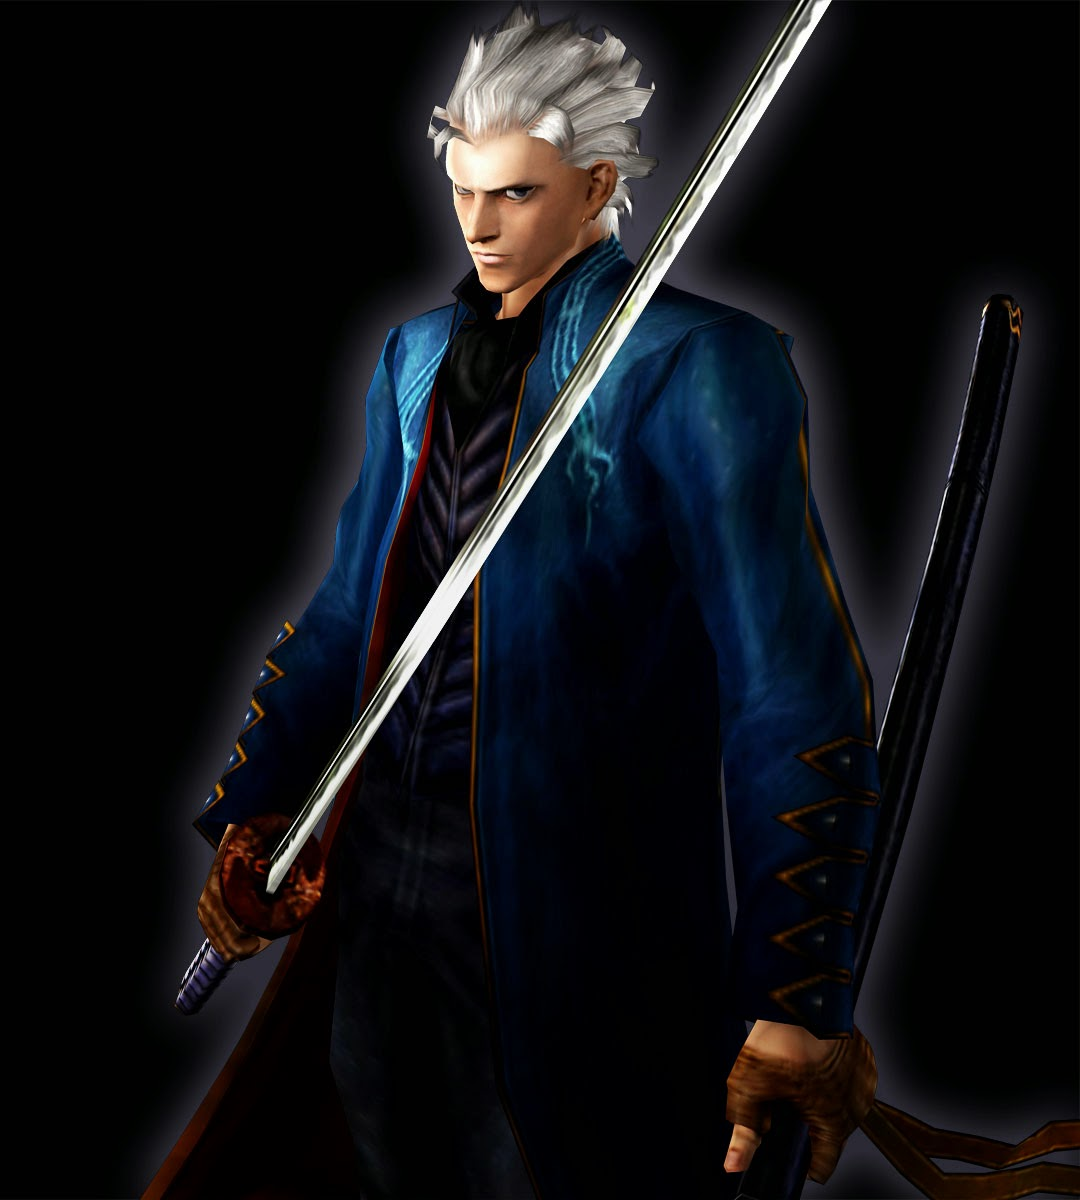 File:Vergil DMC 3.jpg